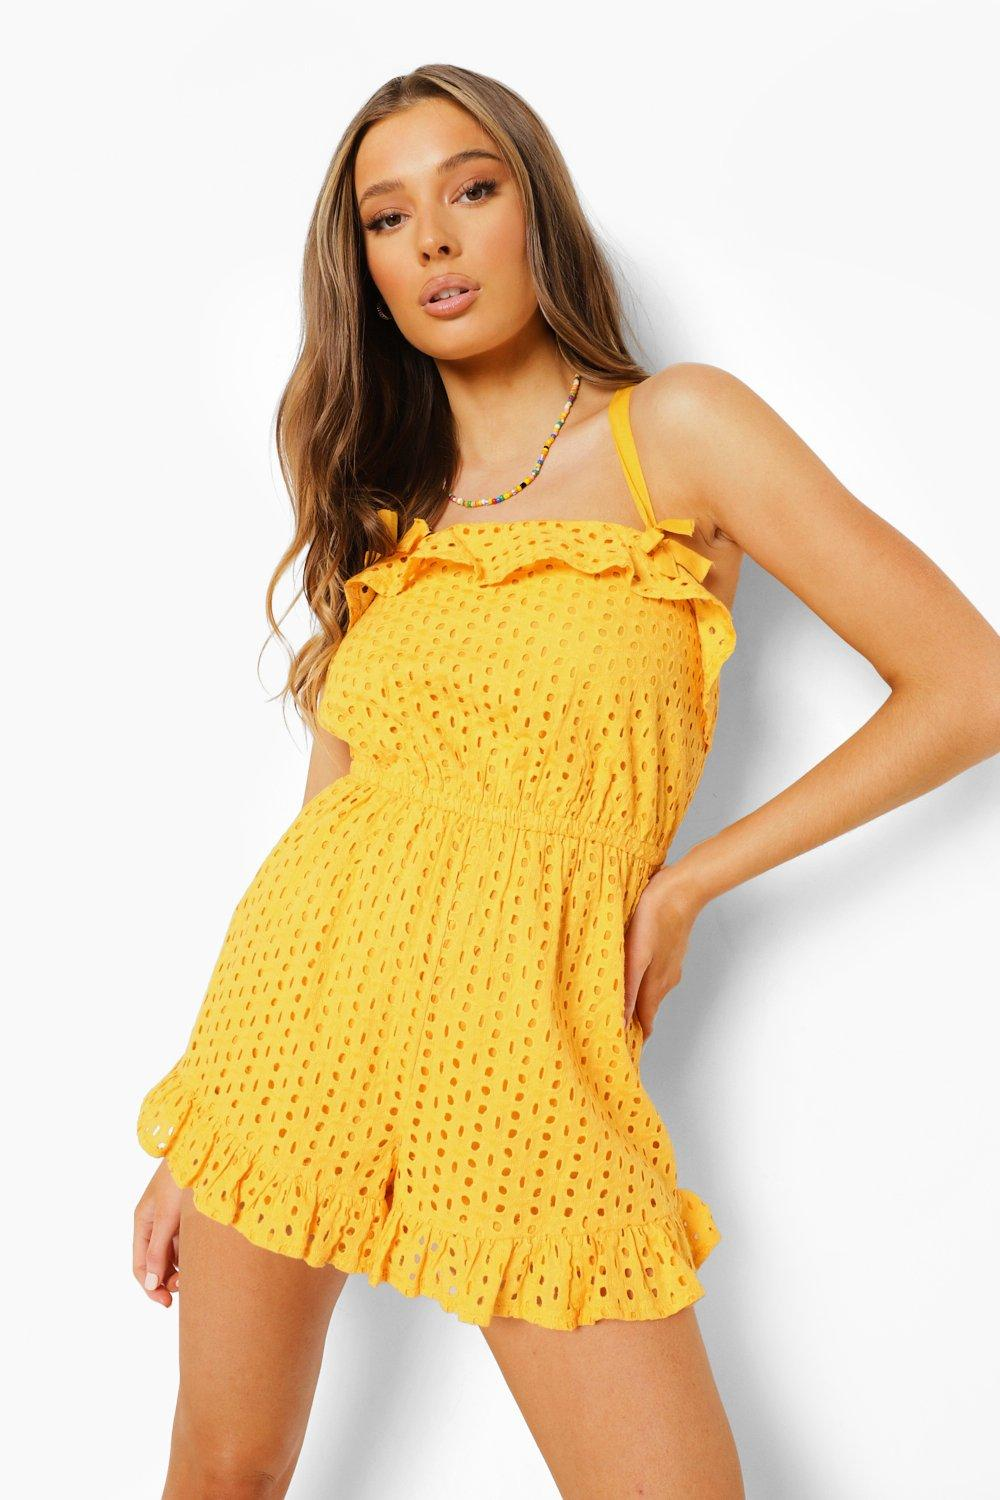 60s Mod Clothing Outfit Ideas Womens Bow Detail Cross Back Broderie Romper - Yellow - 12 $16.00 AT vintagedancer.com